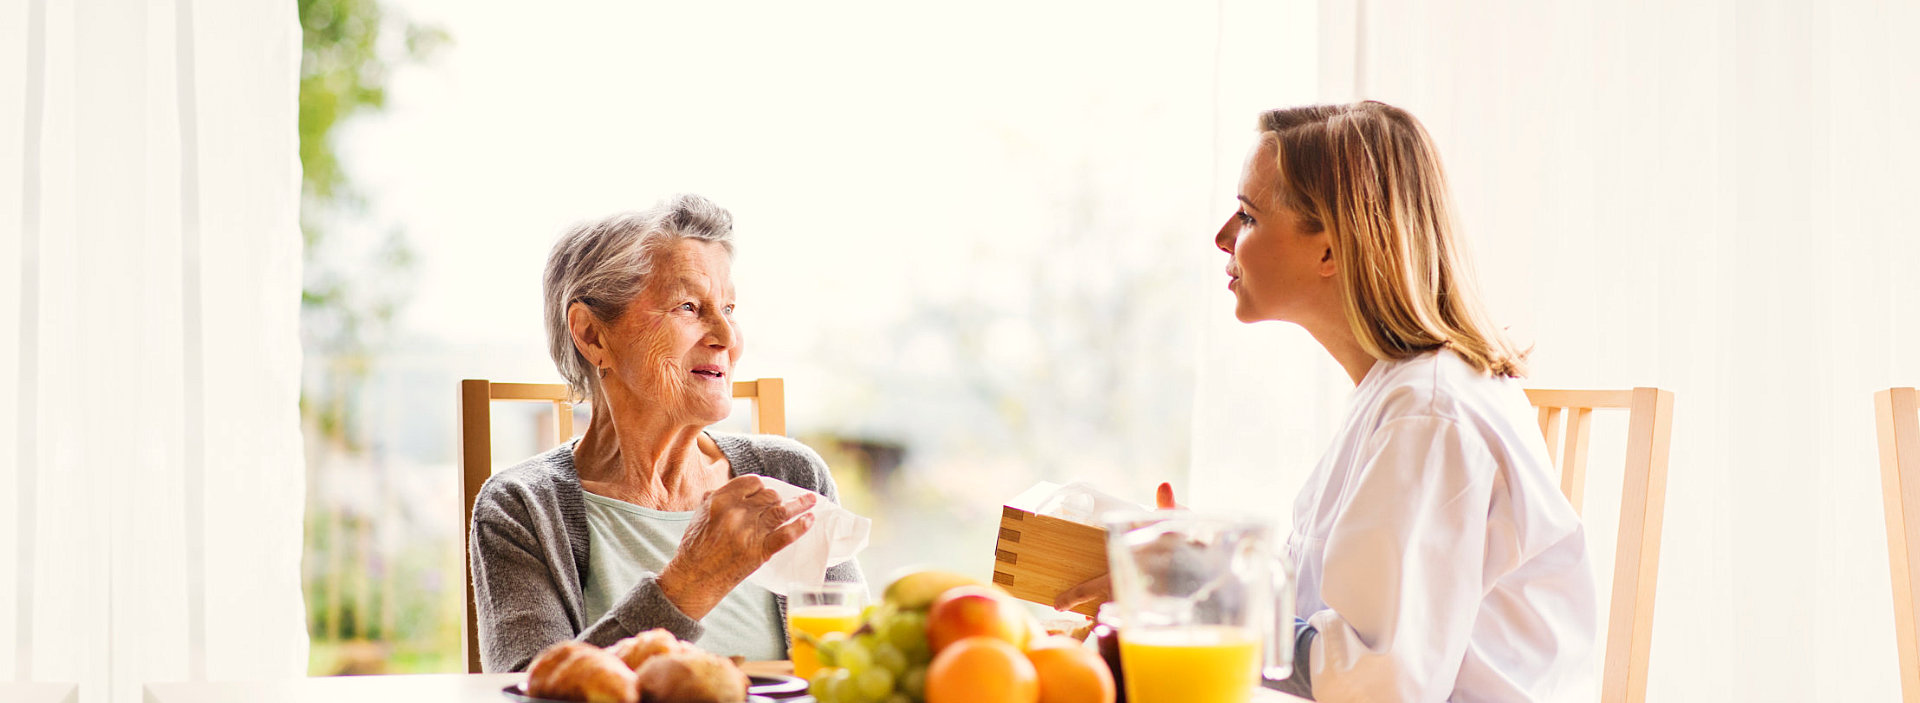 caregiver and senior woman eating